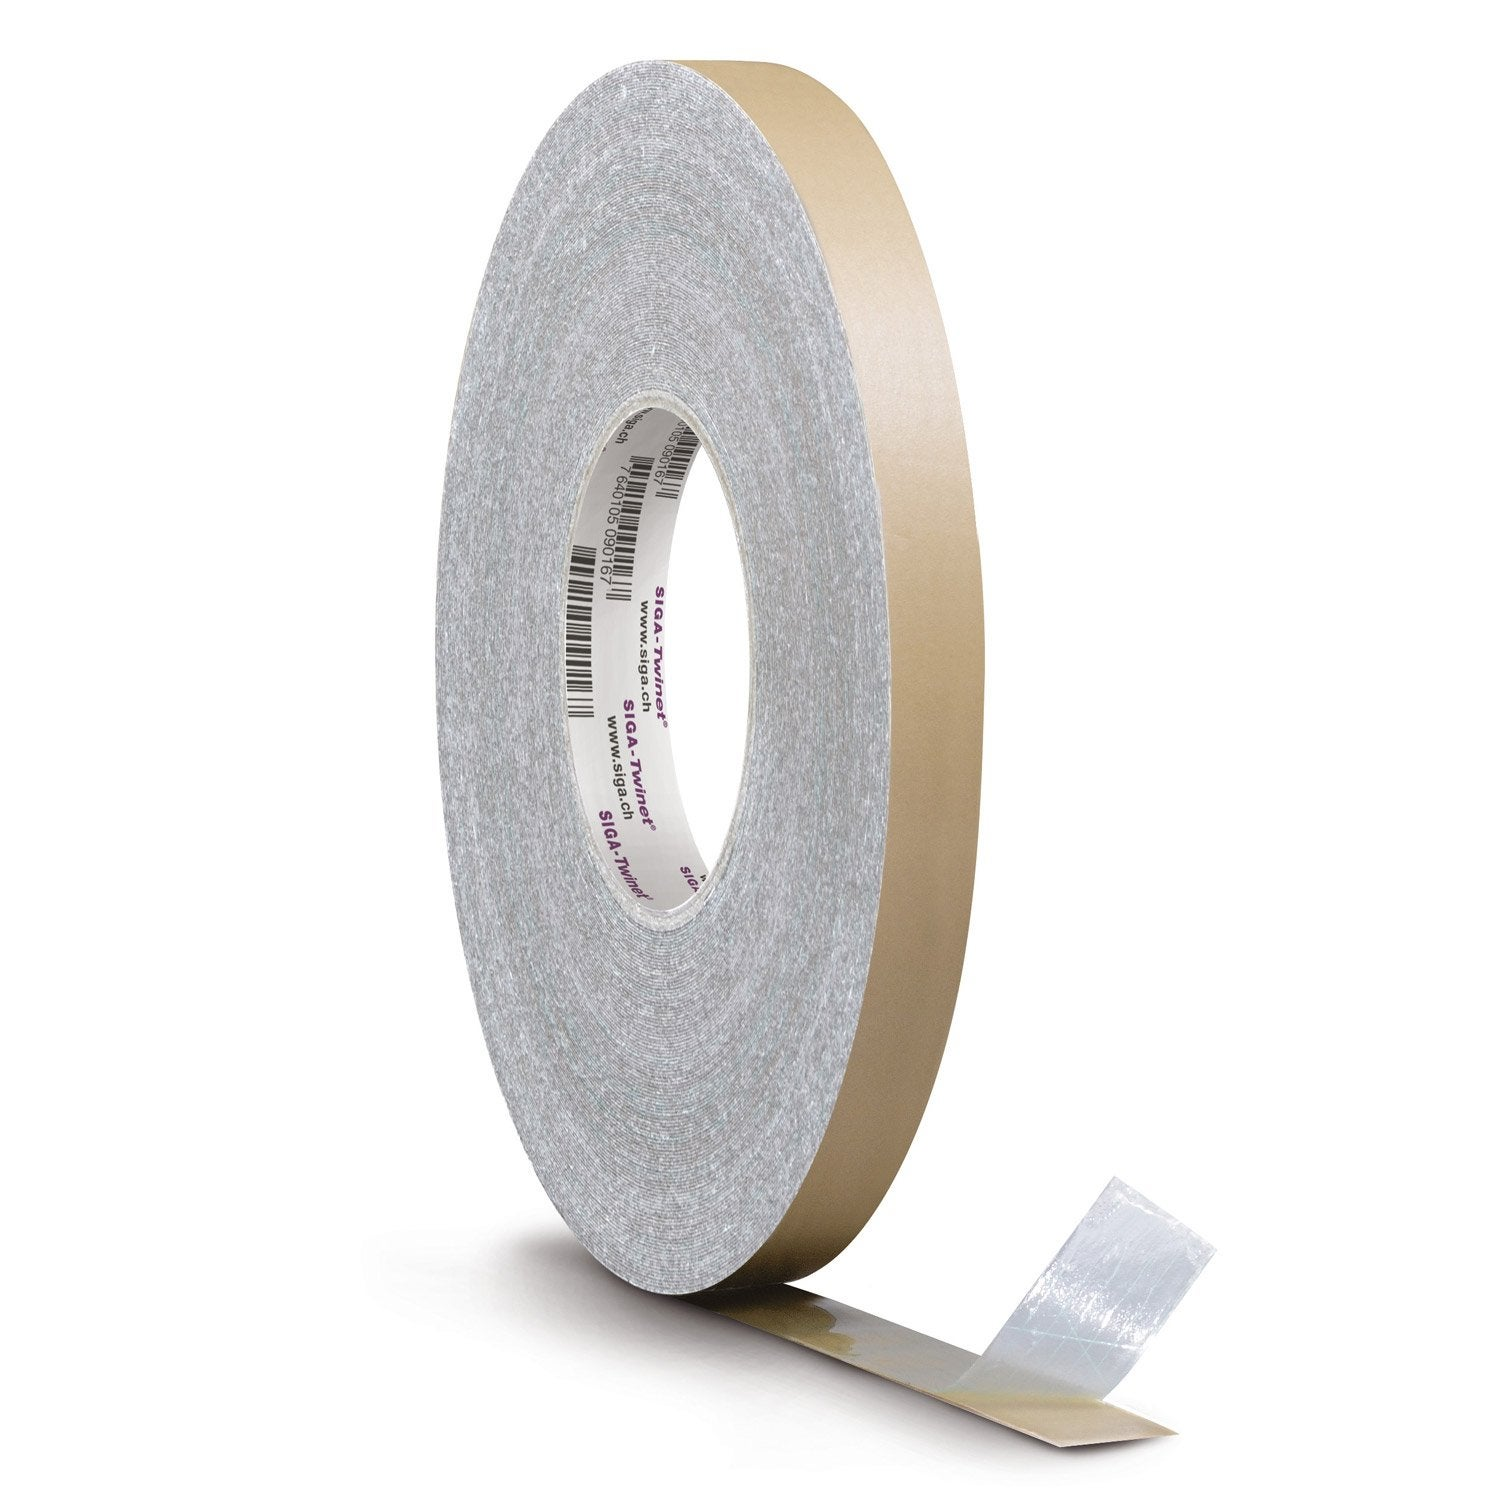 rouleau adh sif pare vapeur twinet siga 25mm x 50m